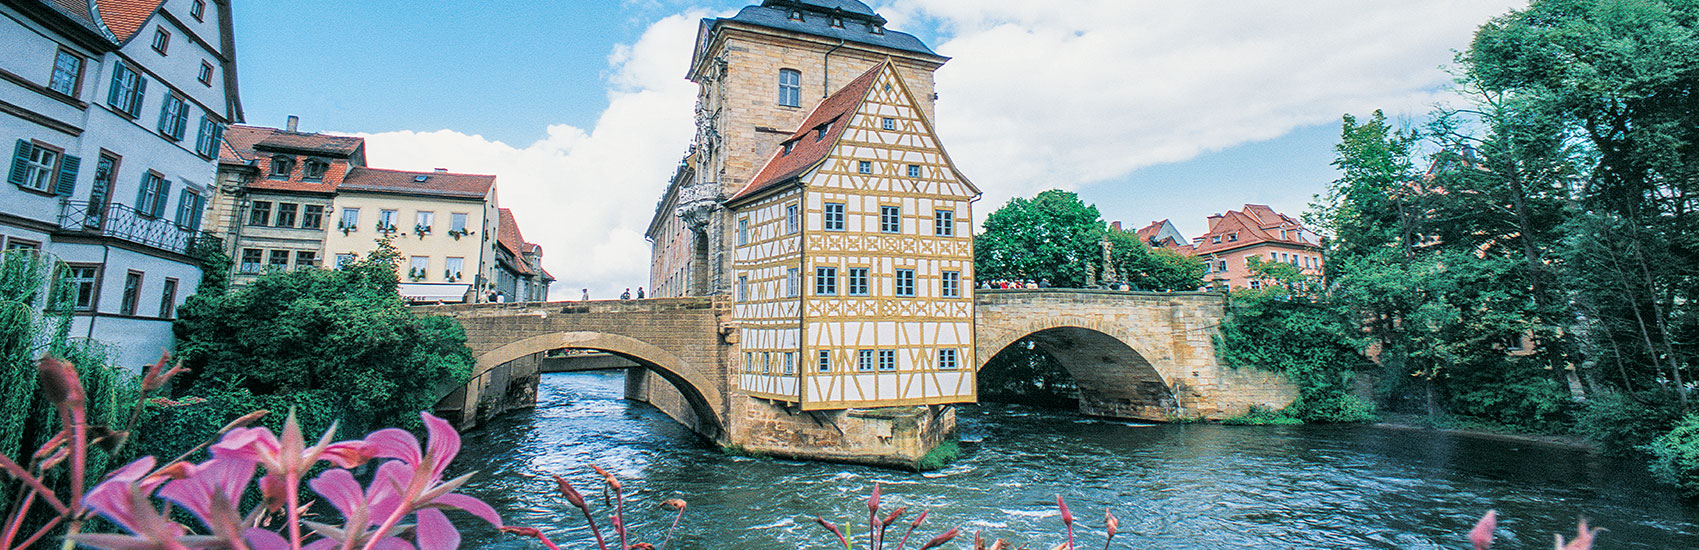 Special Offer from Viking River Cruises 2